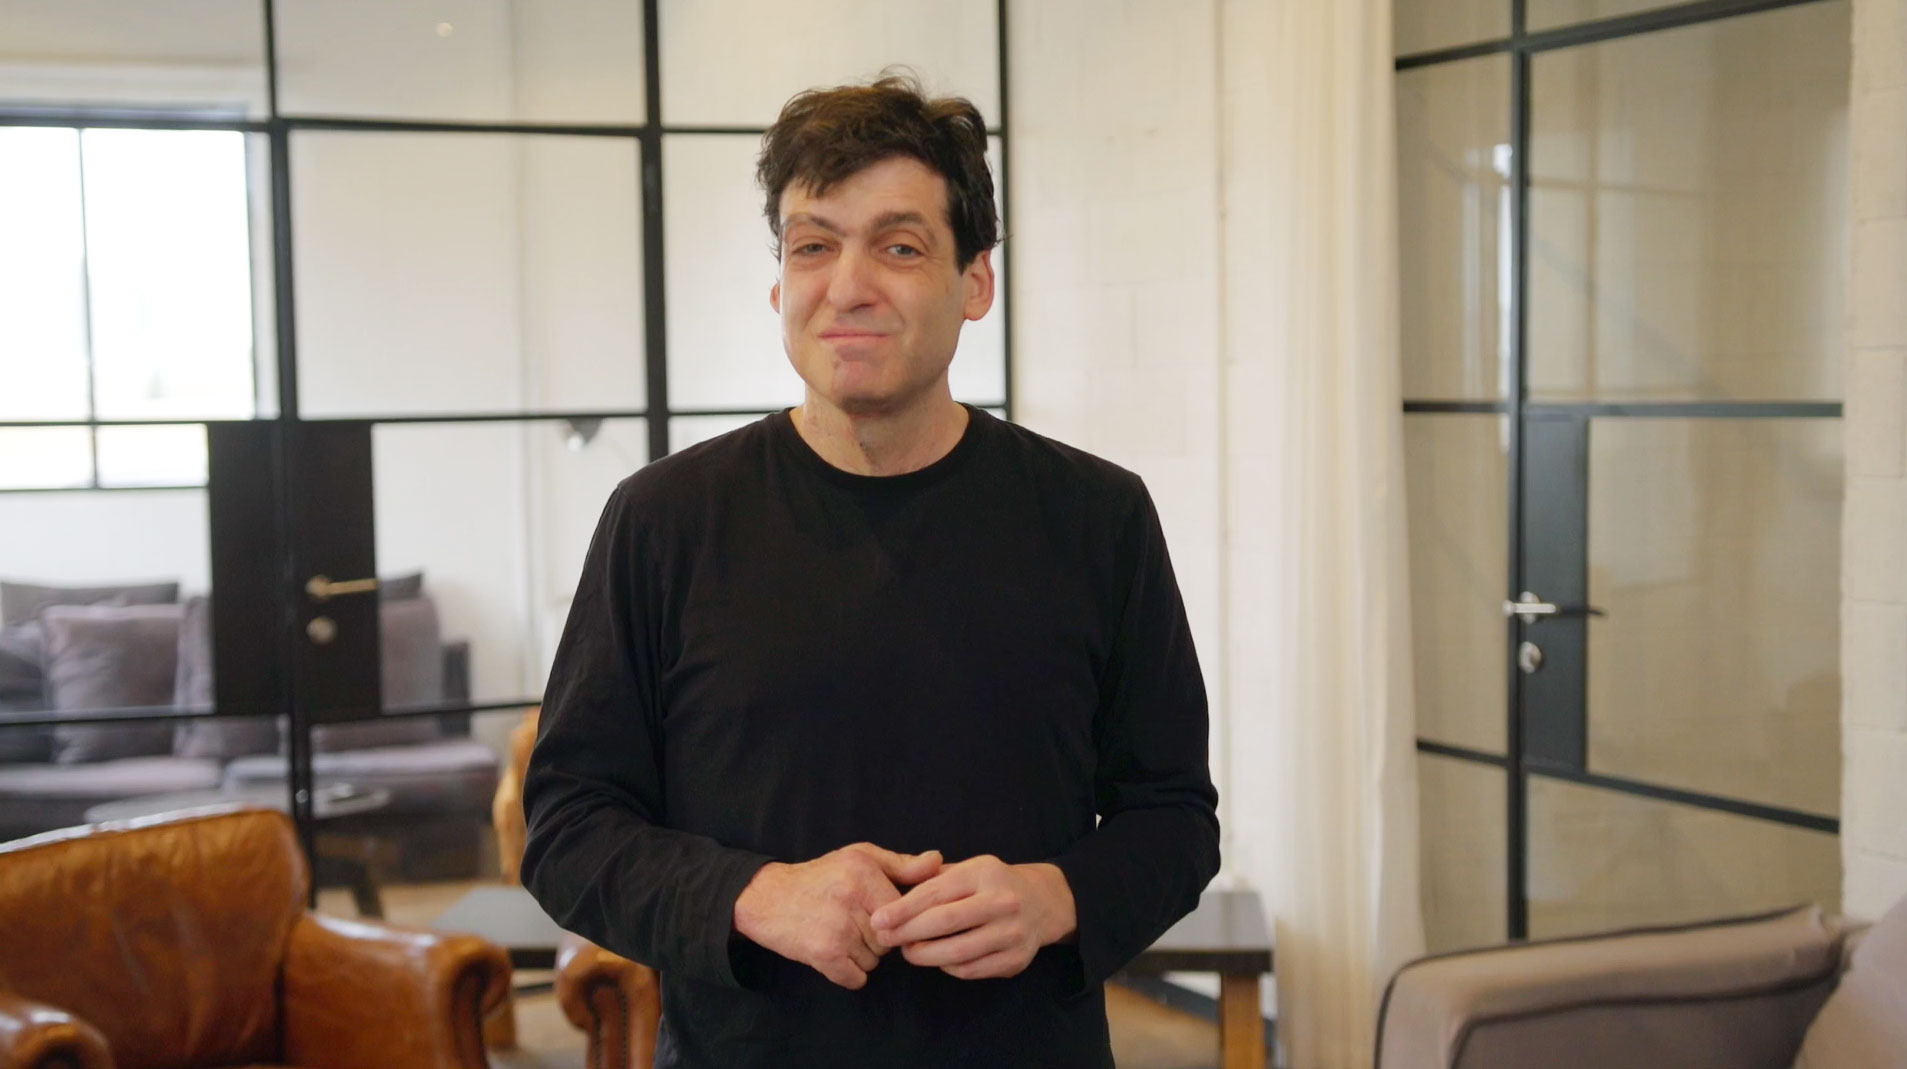 How to be more productive at work - Dan Ariely